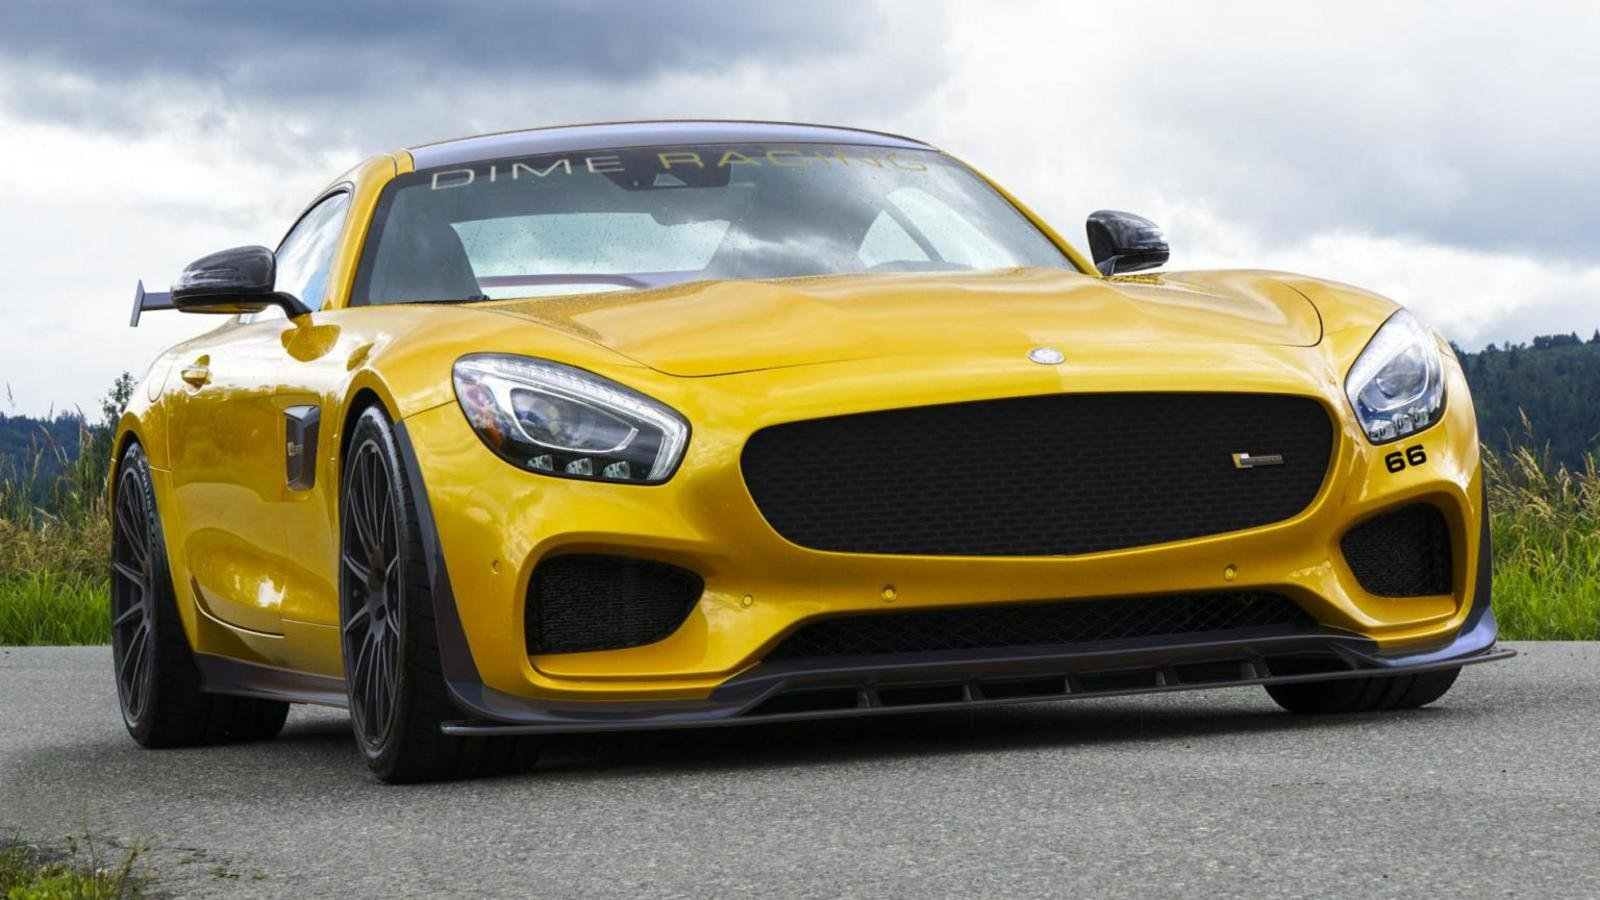 2016 mercedes amg gt by dime racing review top speed. Black Bedroom Furniture Sets. Home Design Ideas